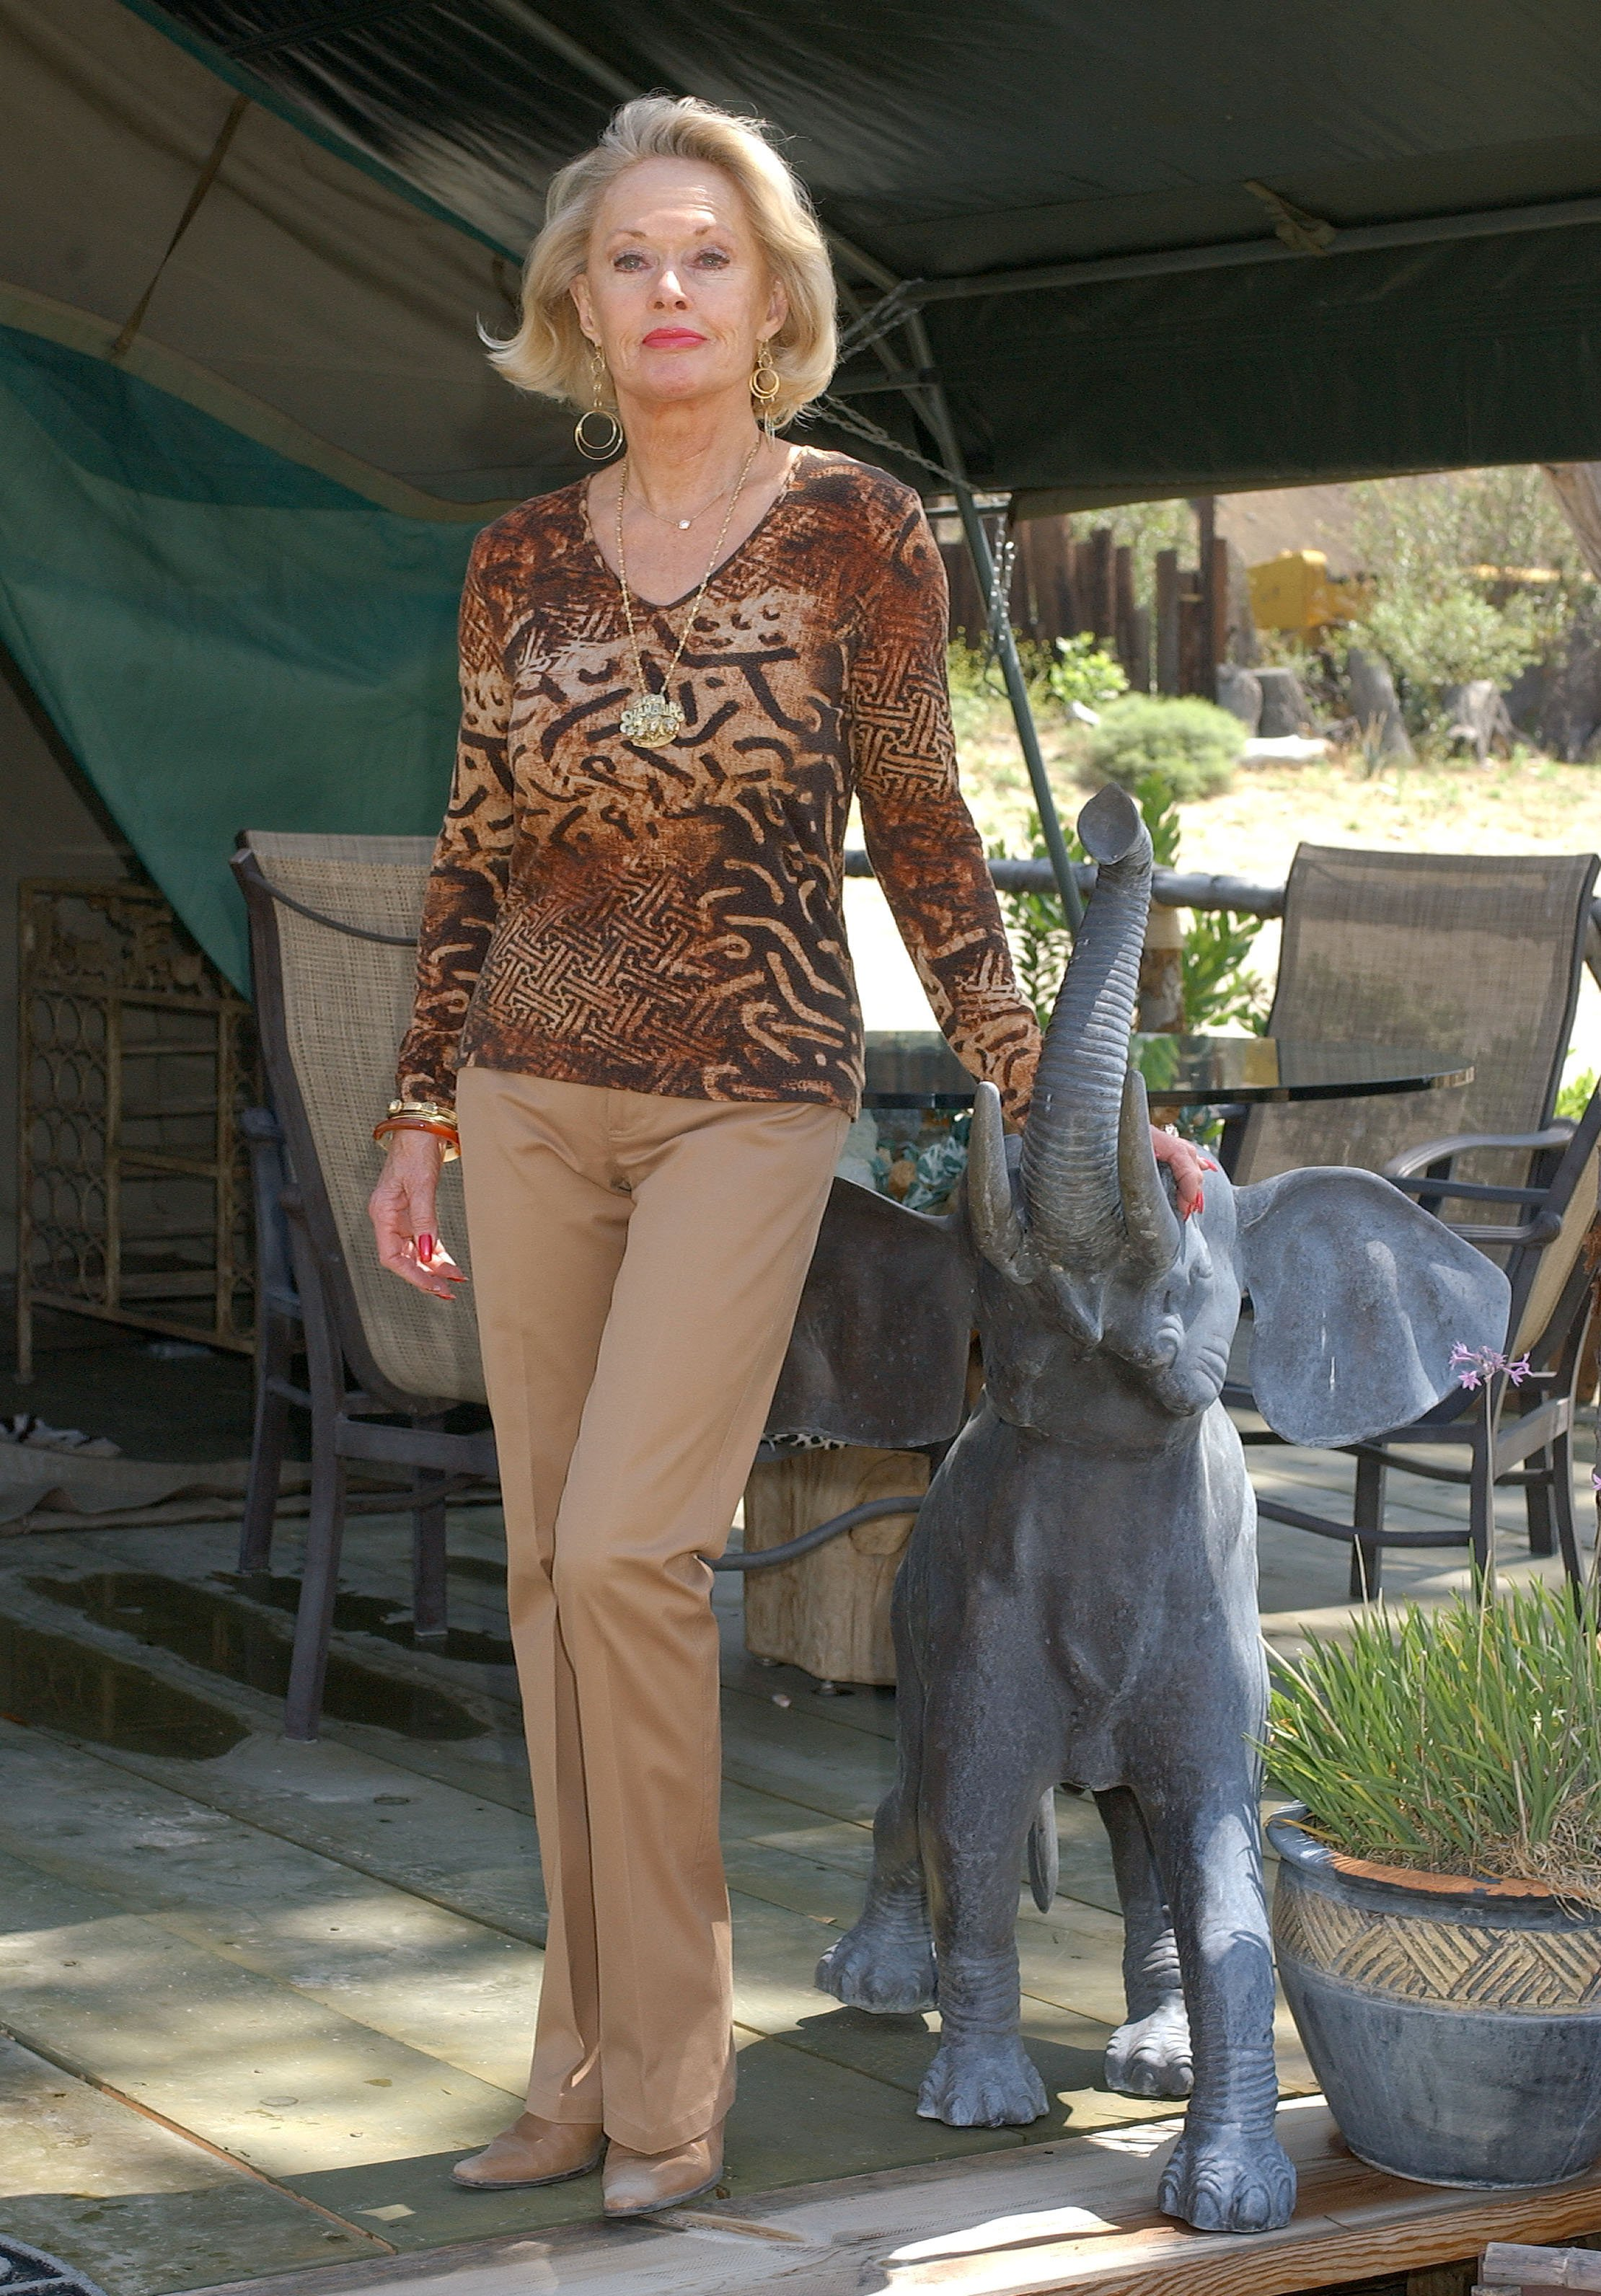 Tippi Hedren during ROAR for Wildlife Global Conference at The Shambala Preserve in Acton, California, United States. | Source: Getty Images